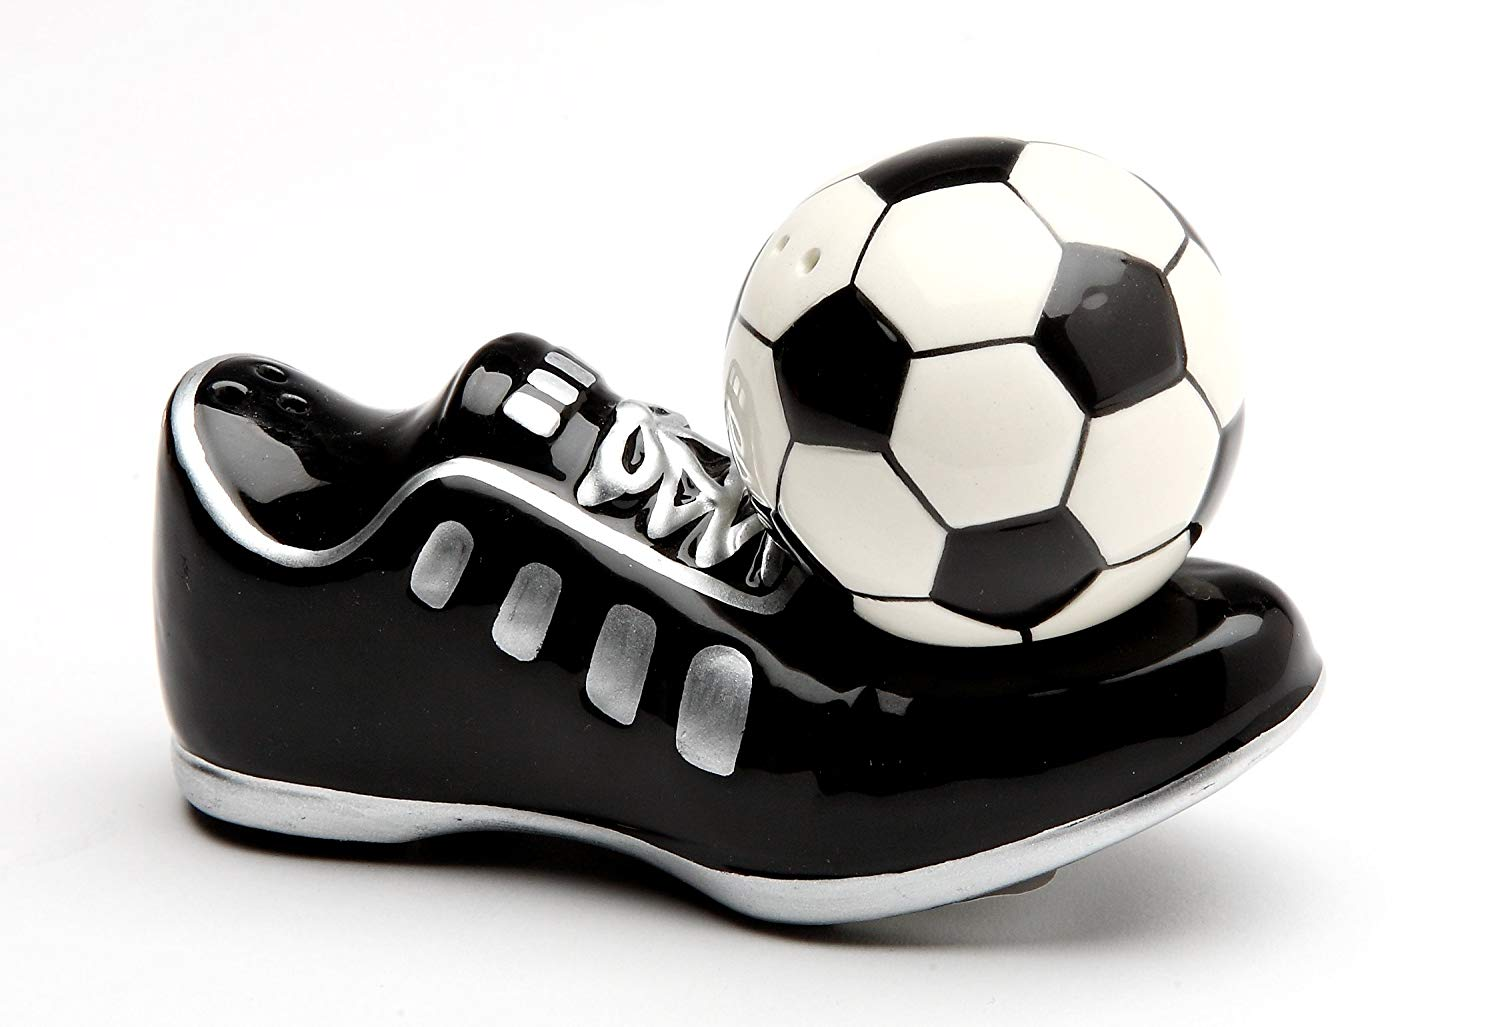 552e81d8db2b Get Quotations · Cosmos Gifts 10466 Soccer Shoes and Soccer Ball Salt and  Pepper Shakers